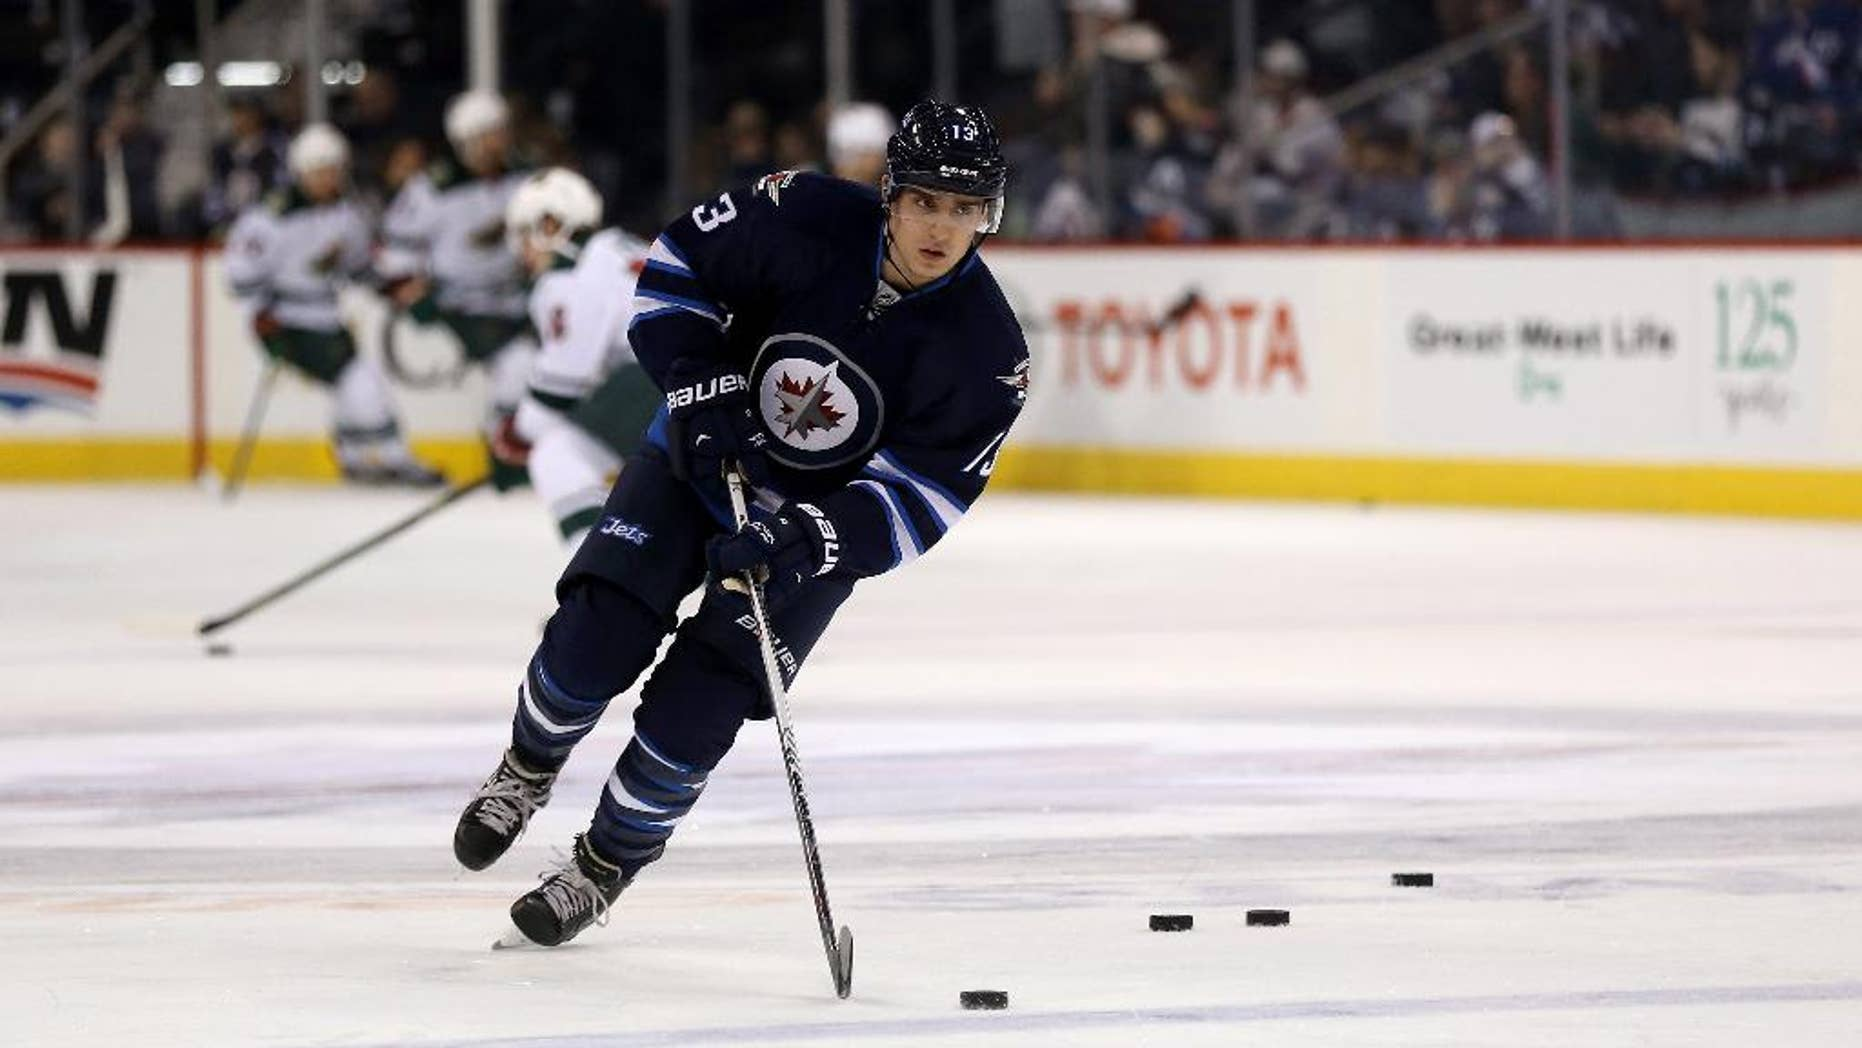 Winnipeg Jets' Brandon Tanev (13), newly signed from Providence College, attends warmups prior to NHL hockey action against the Minnesota Wild in Winnipeg, Manitoba, Sunday, April 3, 2016. (Trevor Hagan/The Canadian Press via AP) MANDATORY CREDIT